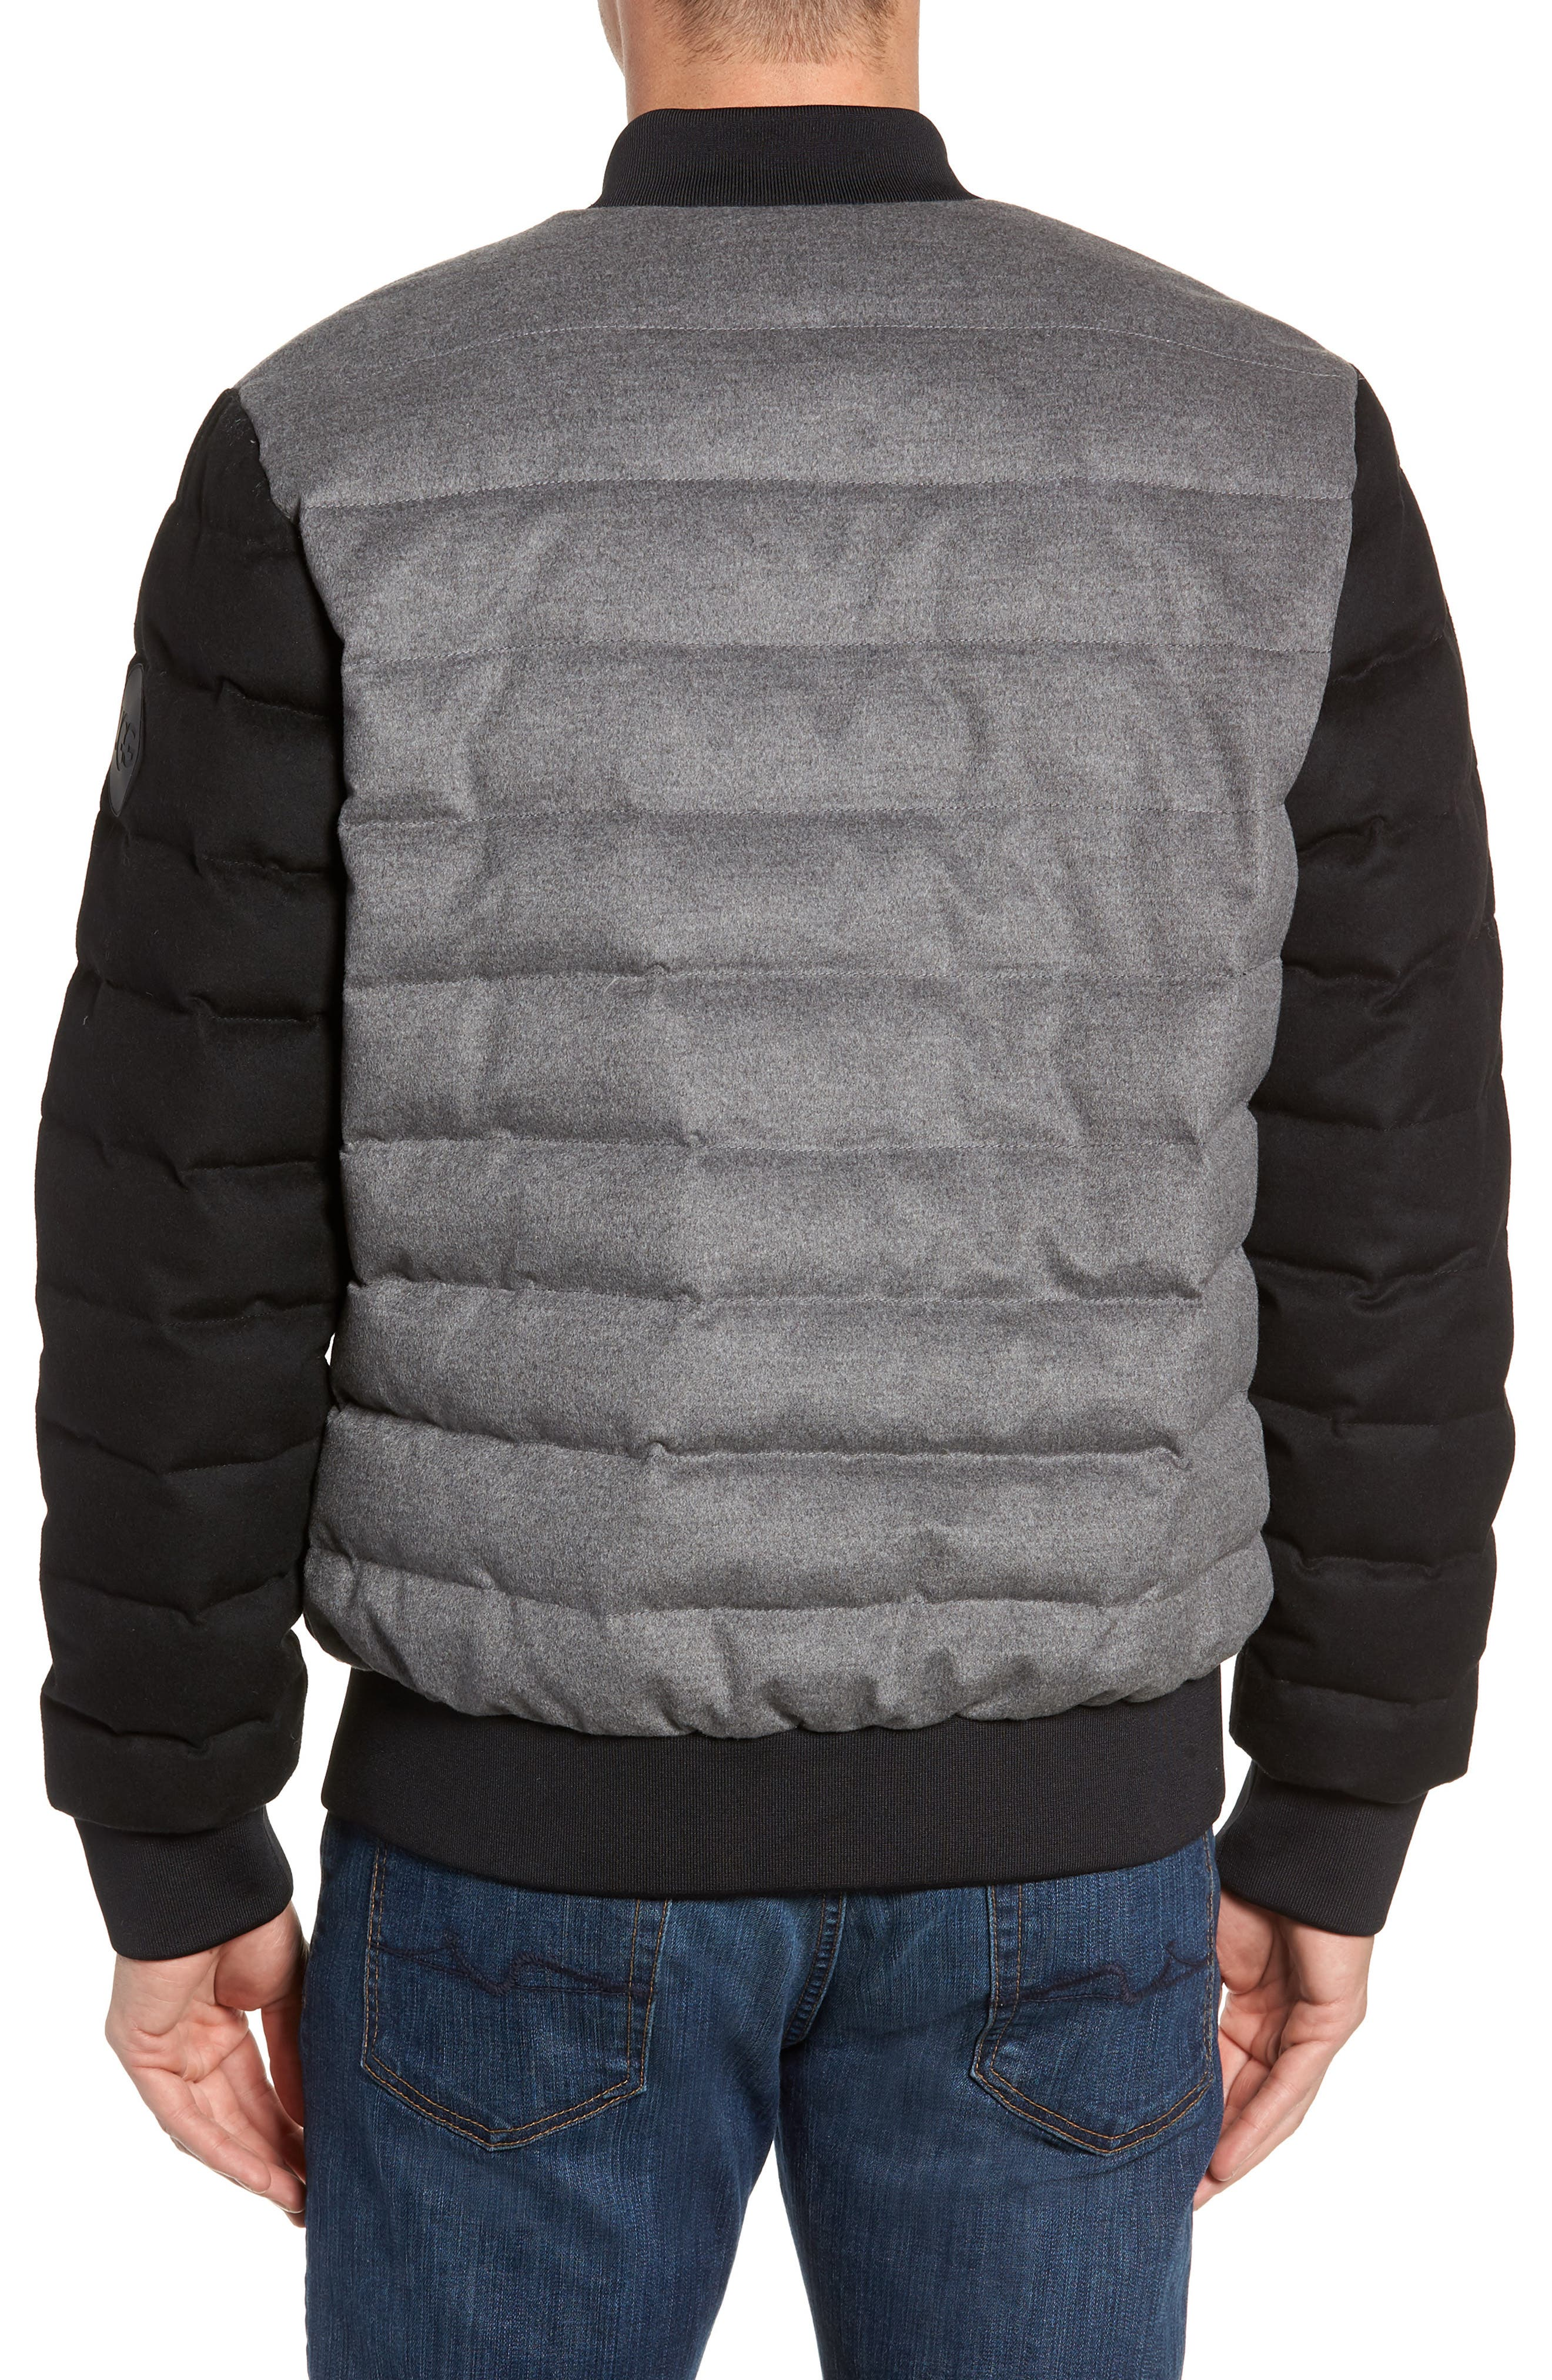 Gavin Down Bomber Jacket,                             Alternate thumbnail 2, color,                             MEDIUM HEATHER GREY/ BLACK